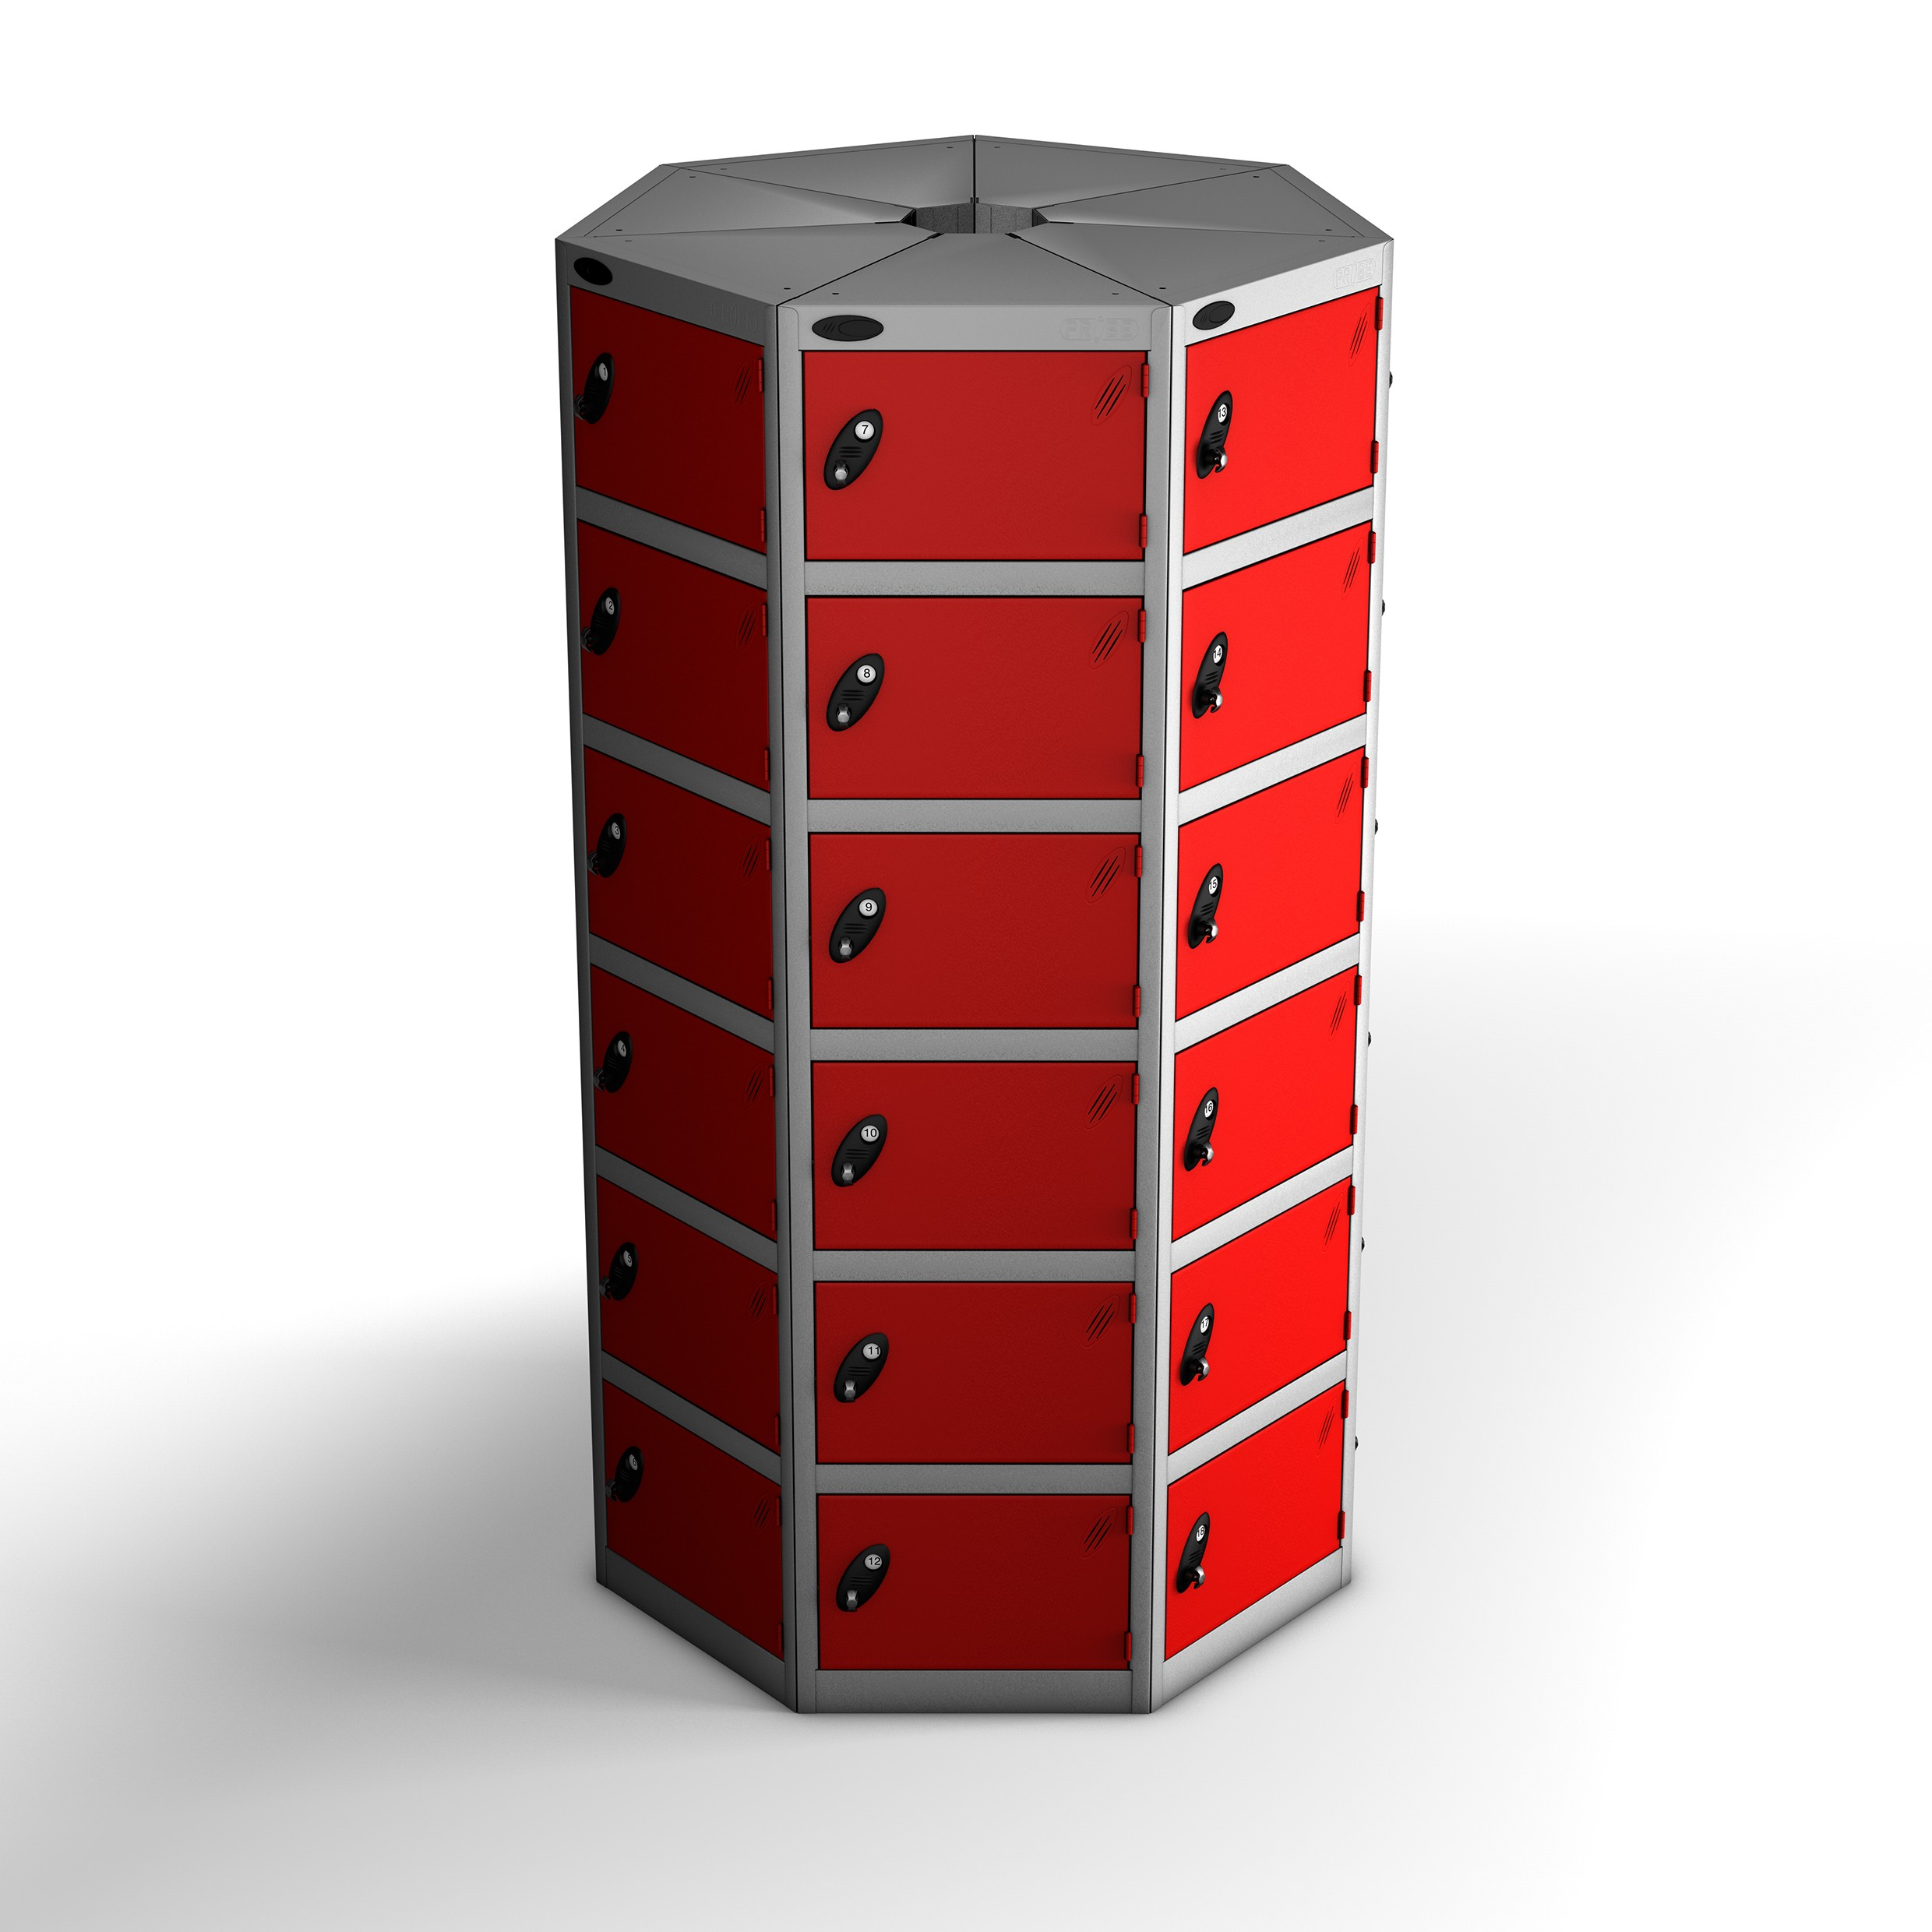 Fourty Two Doors Seven Seed Pod Lockers